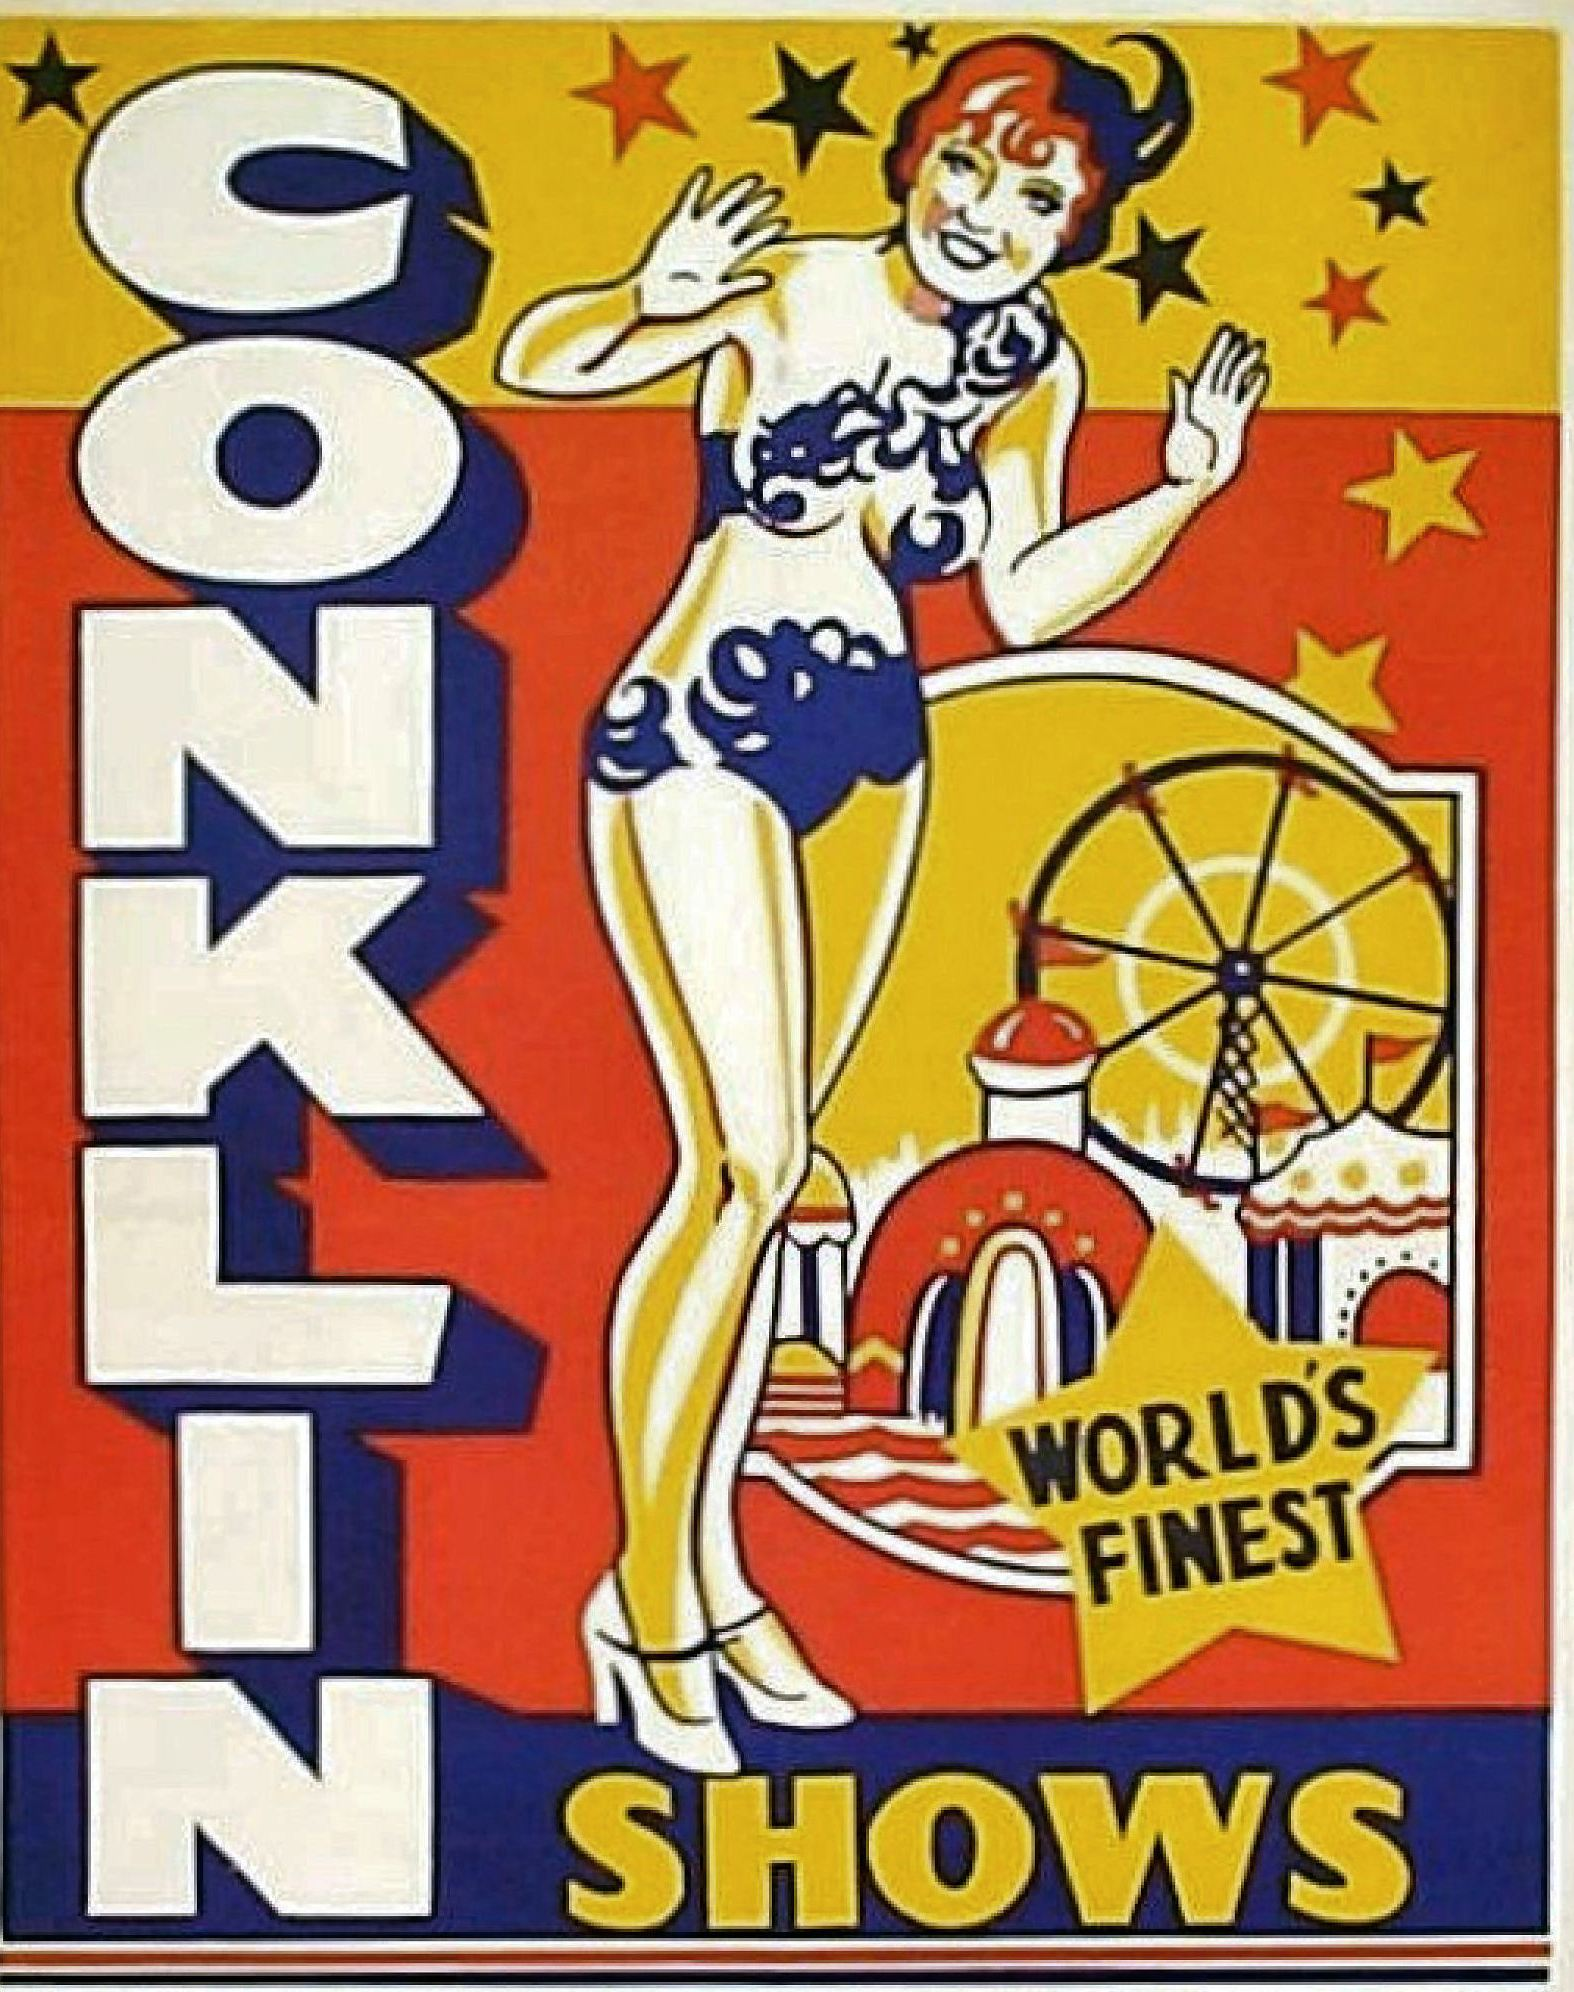 Conklin Shows Poster, circa 1939